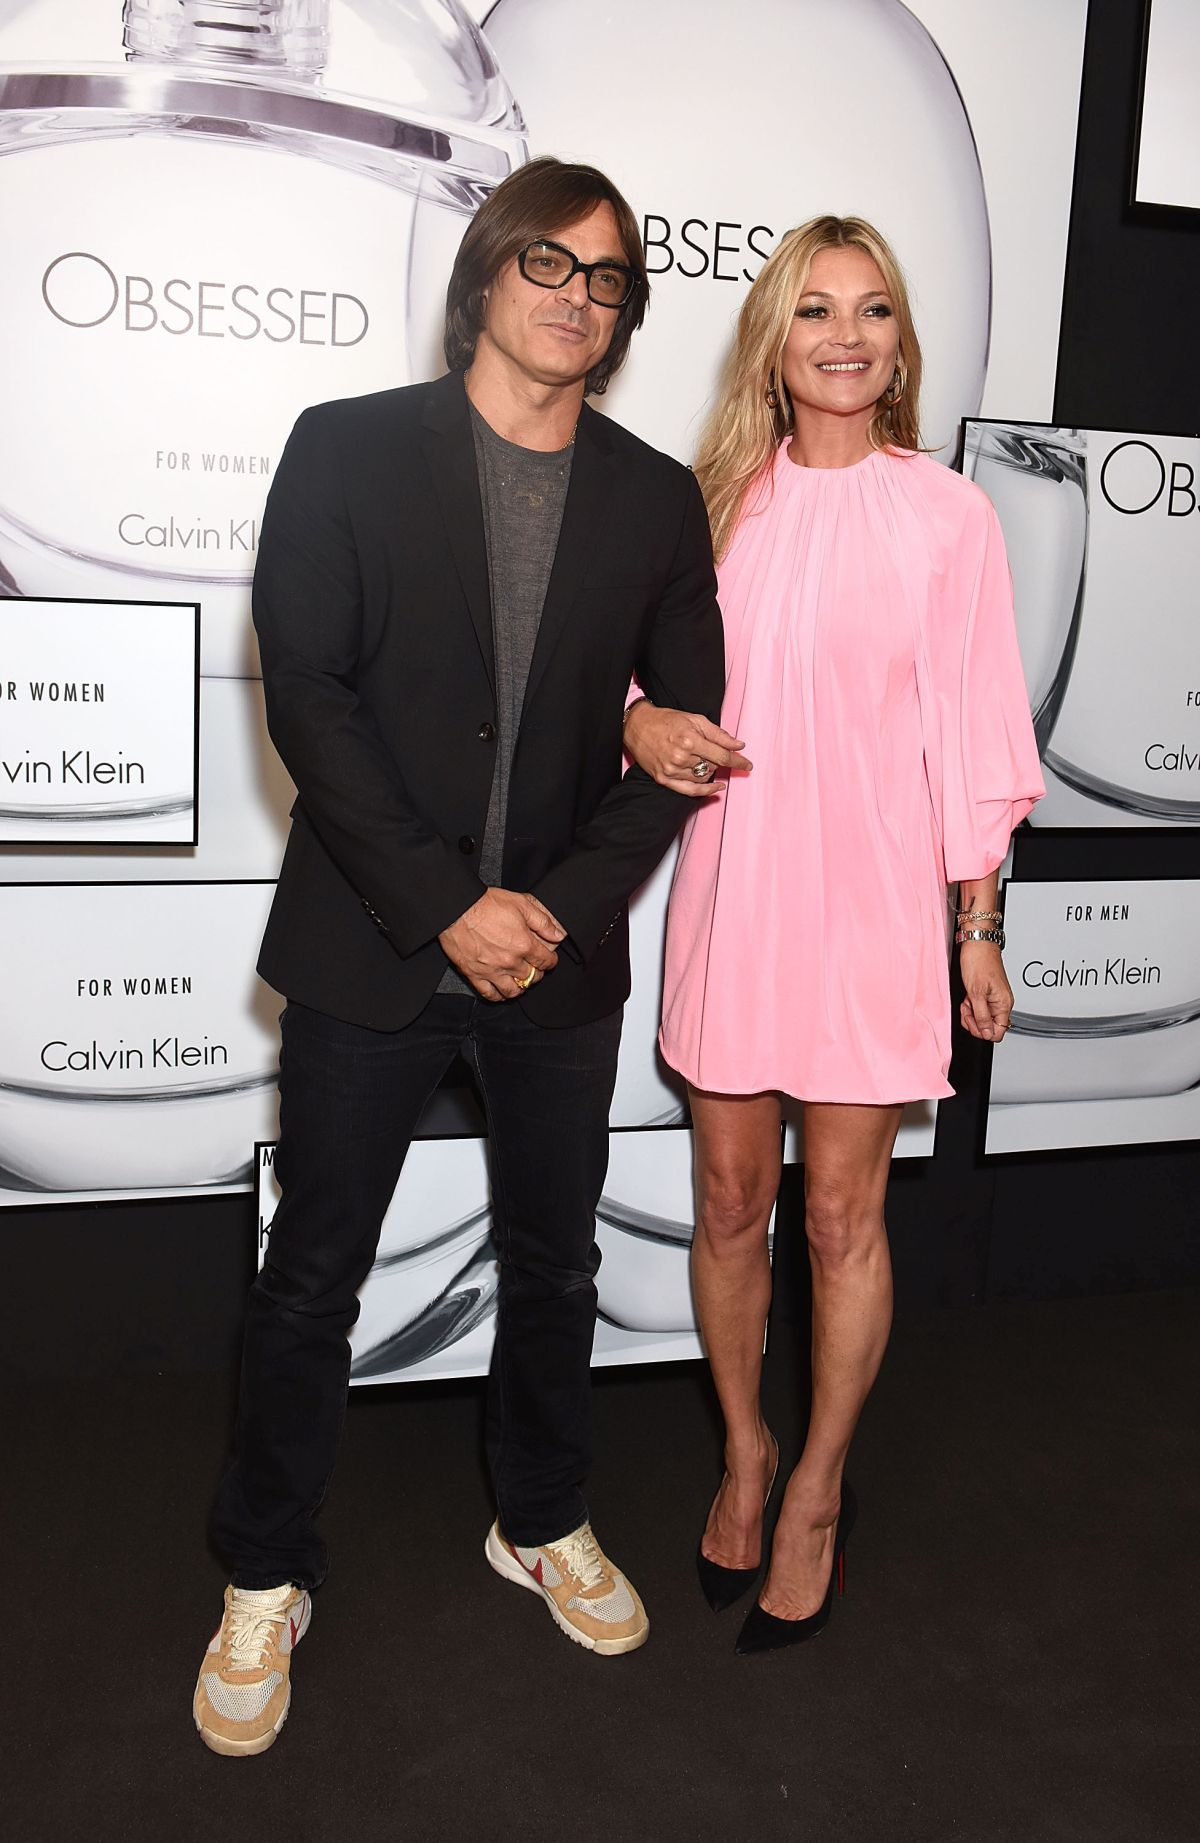 LONDON, ENGLAND - JUNE 22: Mario Sorrenti and Kate Moss attend the Kate Moss & Mario Sorrenti launch of the OBSESSED Calvin Klein fragrance at Spencer House on June 22, 2017 in London, England. (Photo by David M Benett/Dave Benett / Getty Images for Calvin Klein, Inc.) *** Local Caption *** Mario Sorrenti; Kate Moss